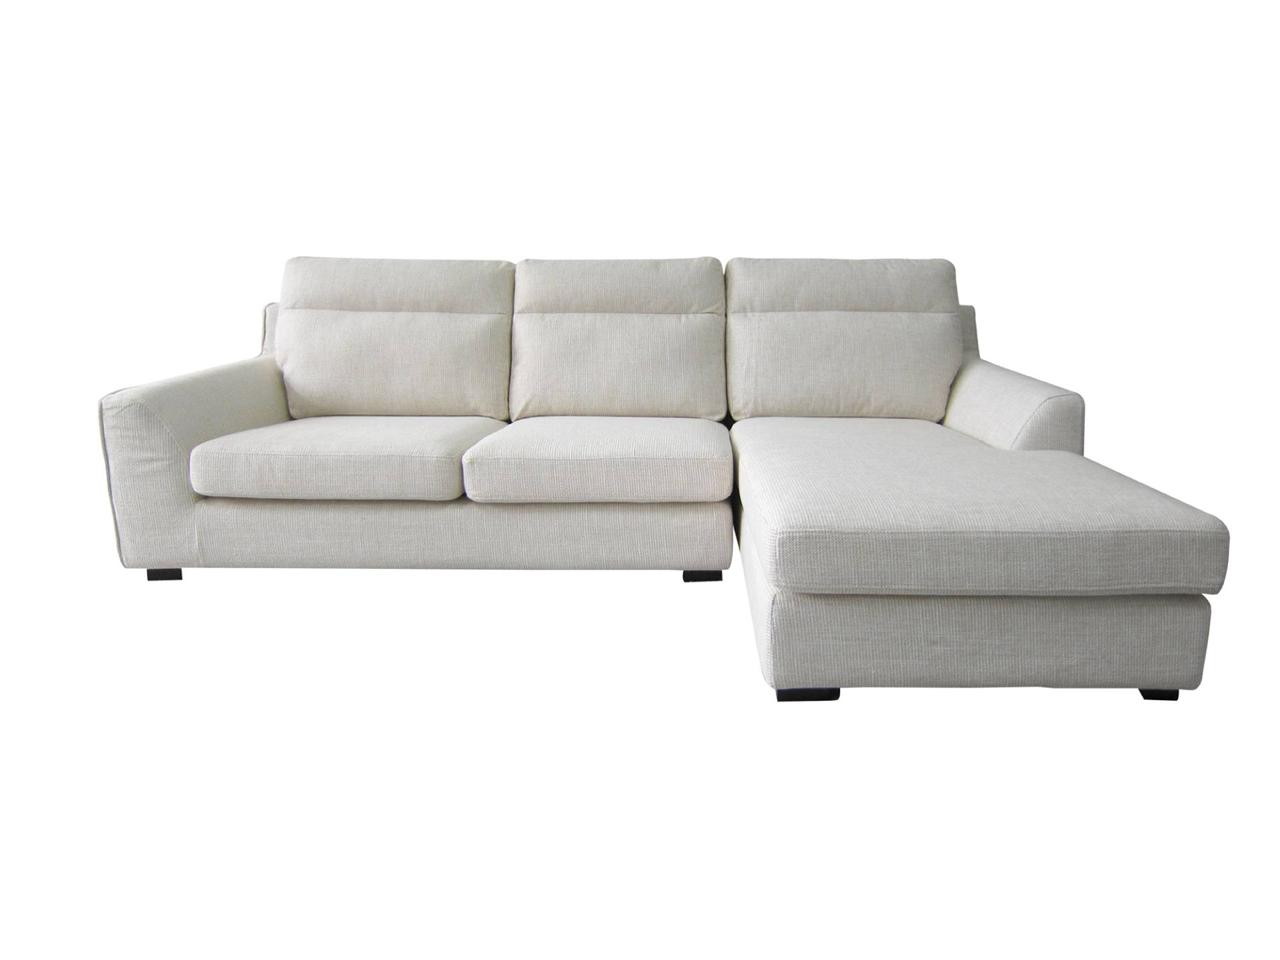 Modern fabric light beige 2 seater gorgeous sofa with for Beige sofa with chaise